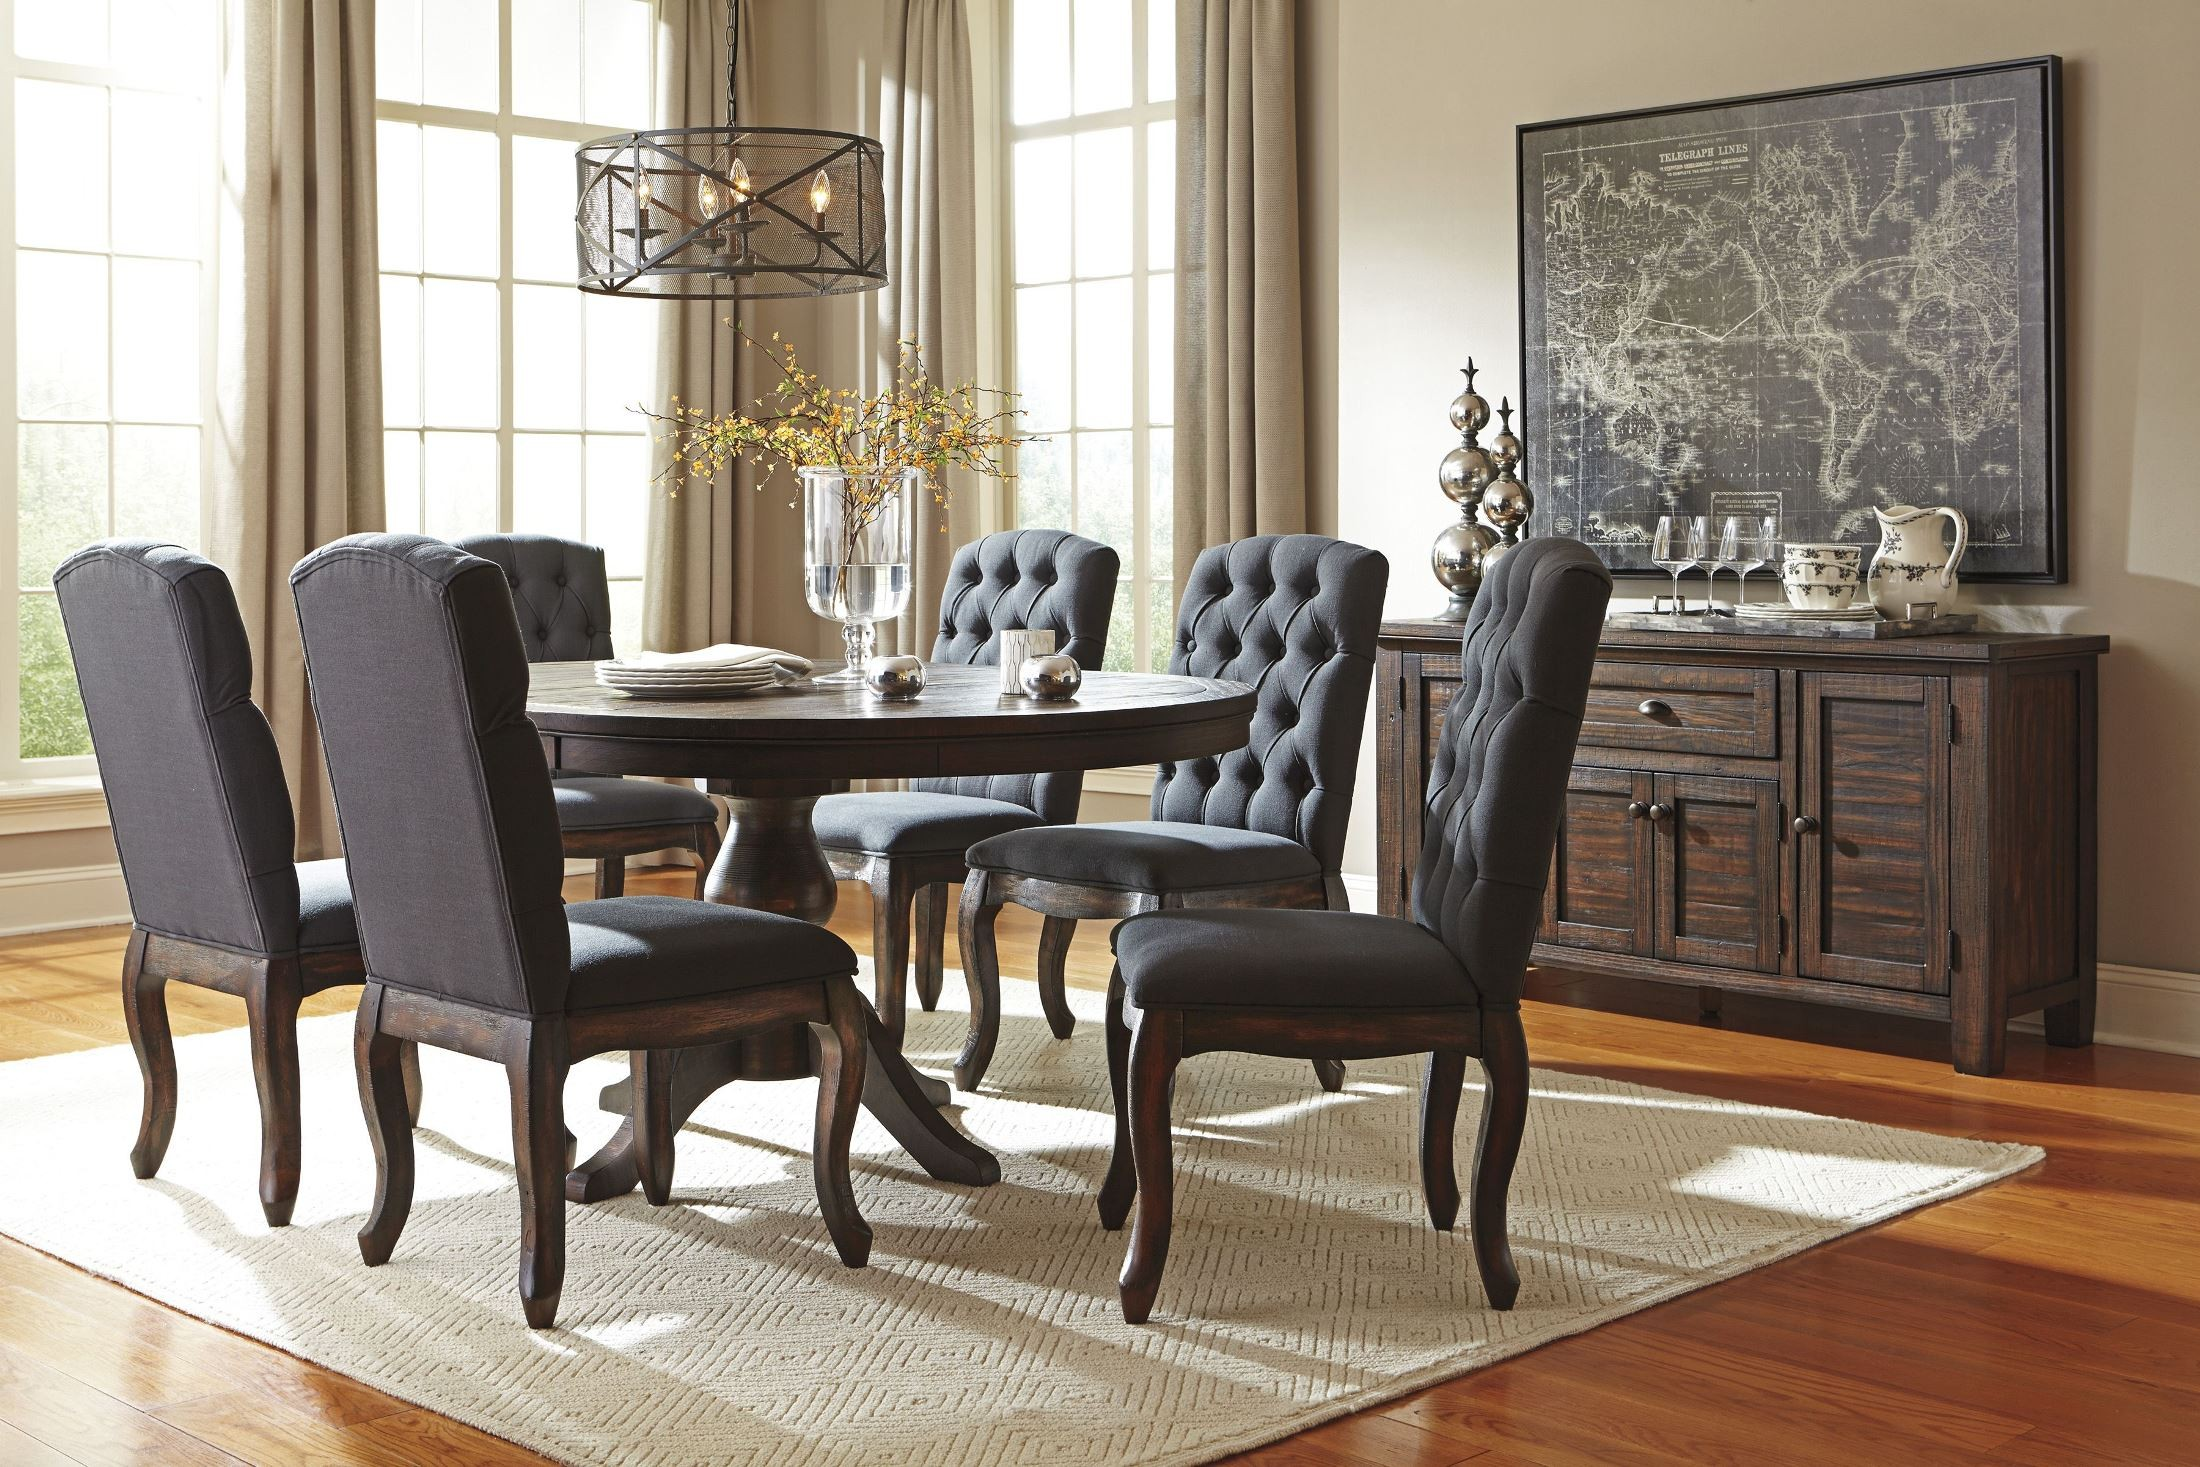 Trudell Dark Brown Round Extendable Pedestal Dining Table  : d658 50 026 60 from colemanfurniture.com size 2200 x 1467 jpeg 785kB